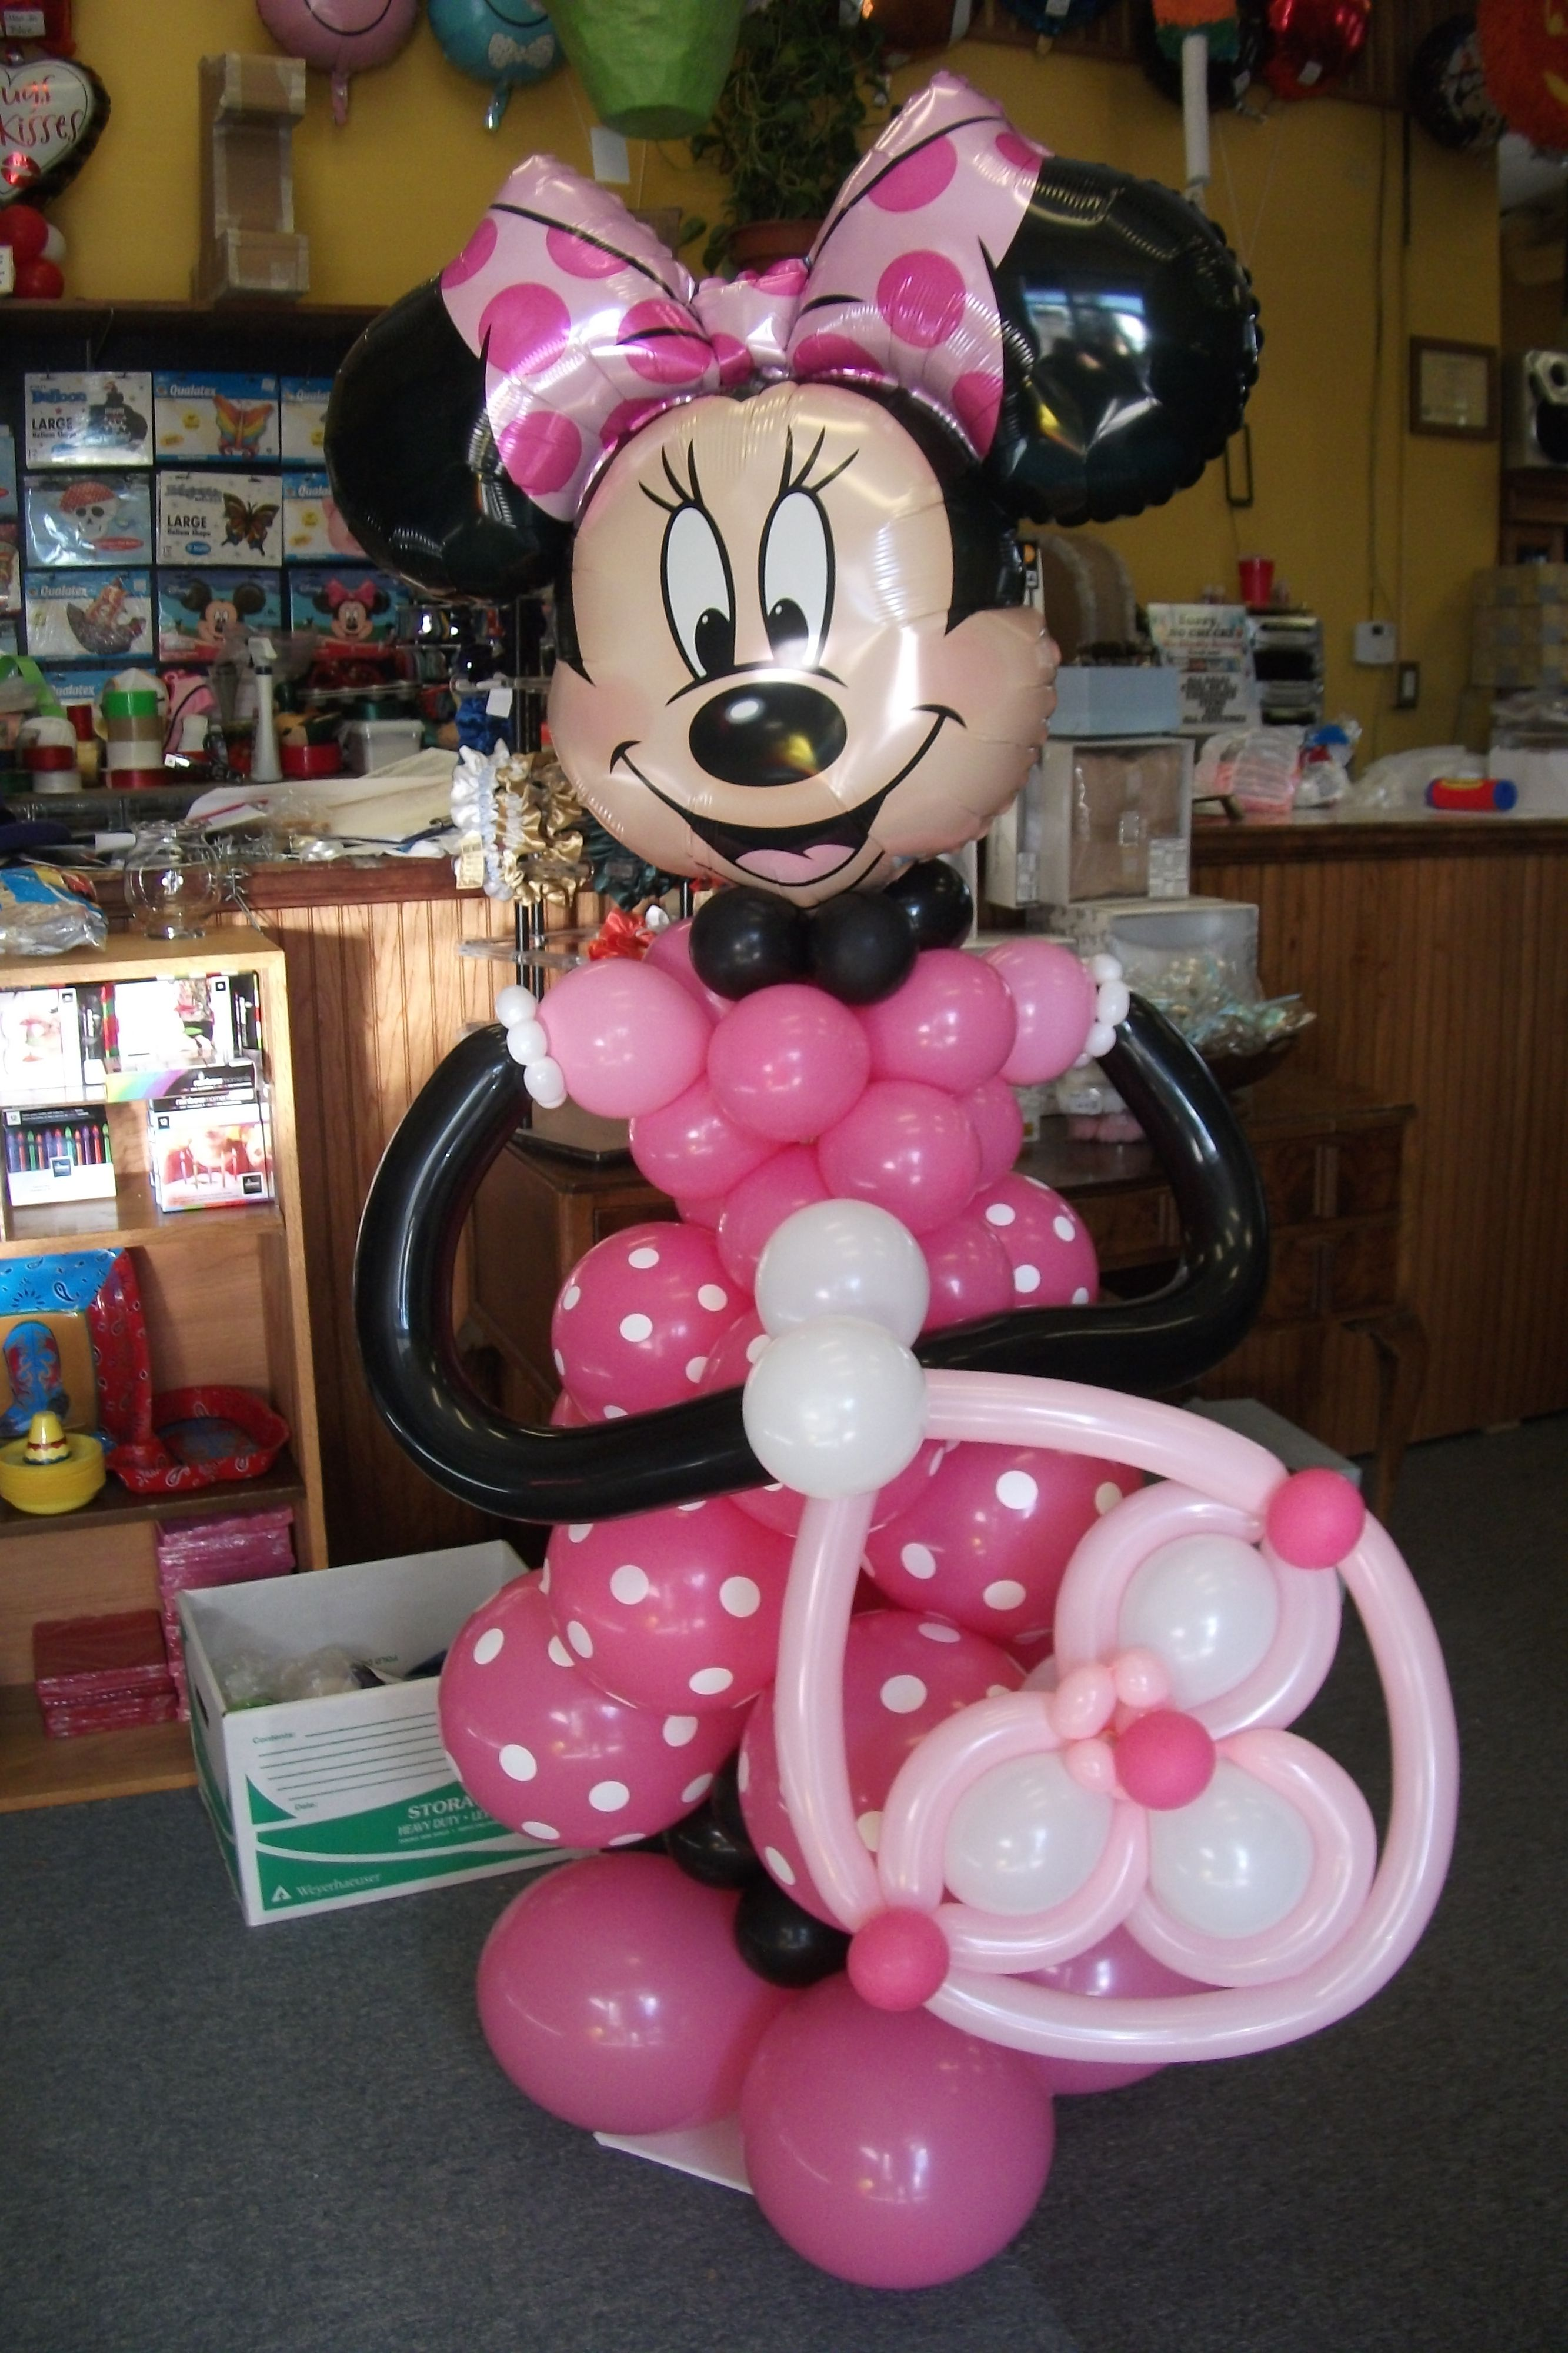 Here is our Minnie Mouse. She is just about 5 feet tall and would make a wonderful surprise for a little girls birthday party. Designed by Balloons by Night Moods in Juneau, Alaska 523-1099 www.juneausbestballoons.com